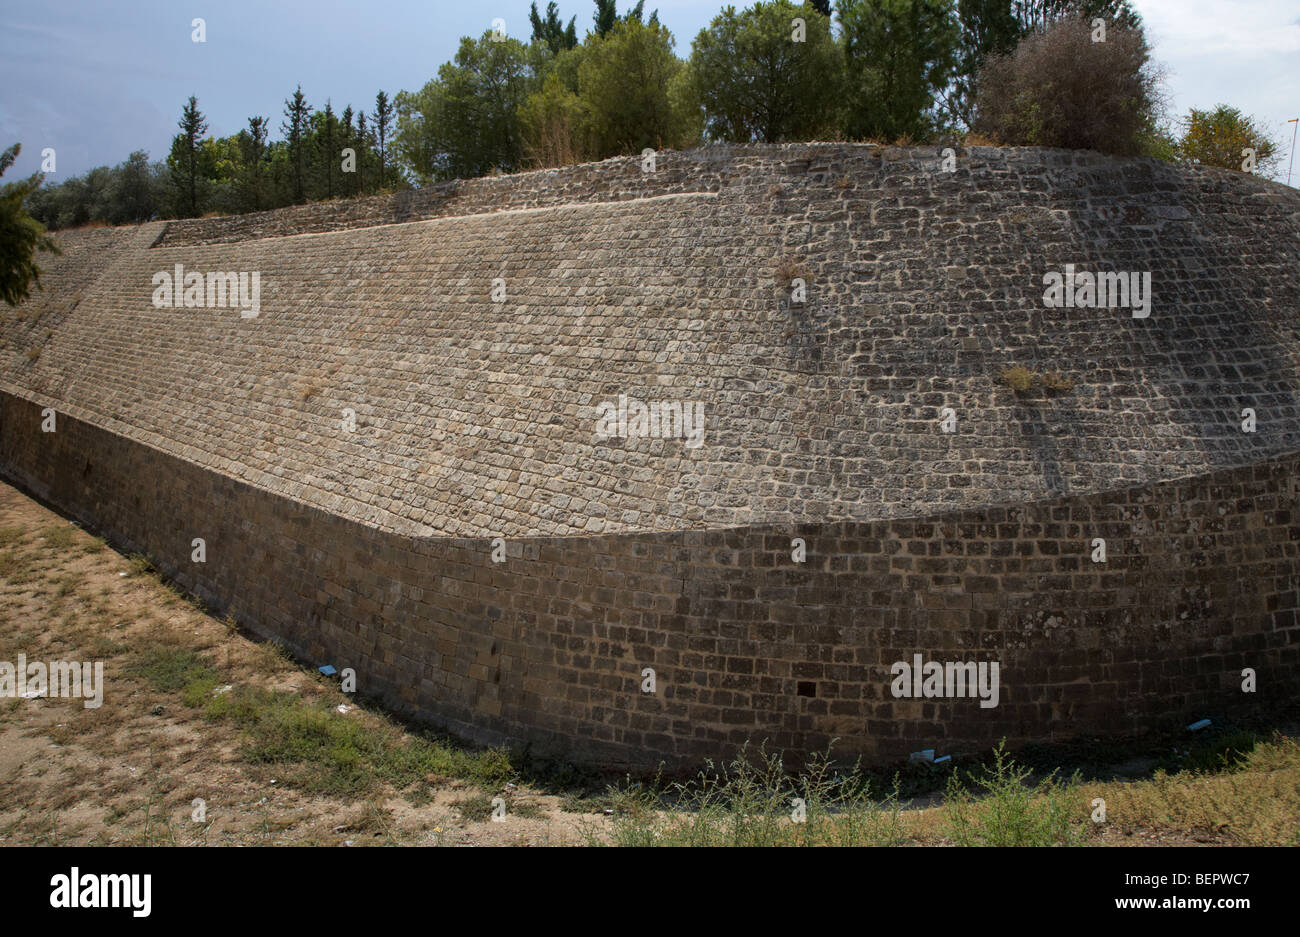 thick stone walls in the old venetian city walls at caraffa bastion in nicosia lefkosia republic of cyprus - Stock Image